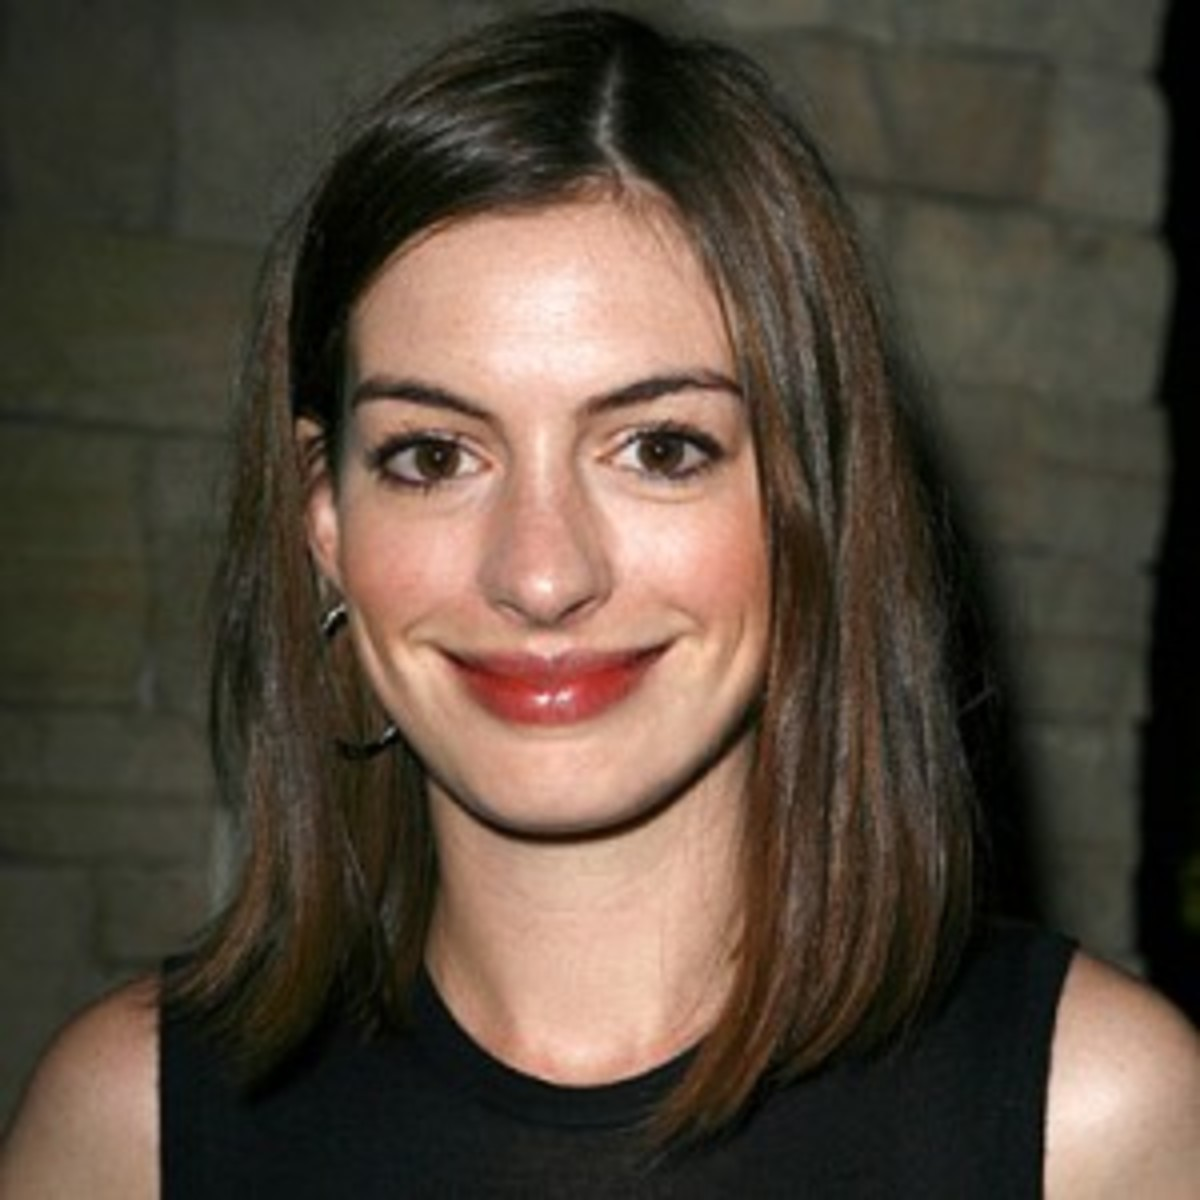 Anne Hathaway's eyebrows are a bit fuller than most celebrities.